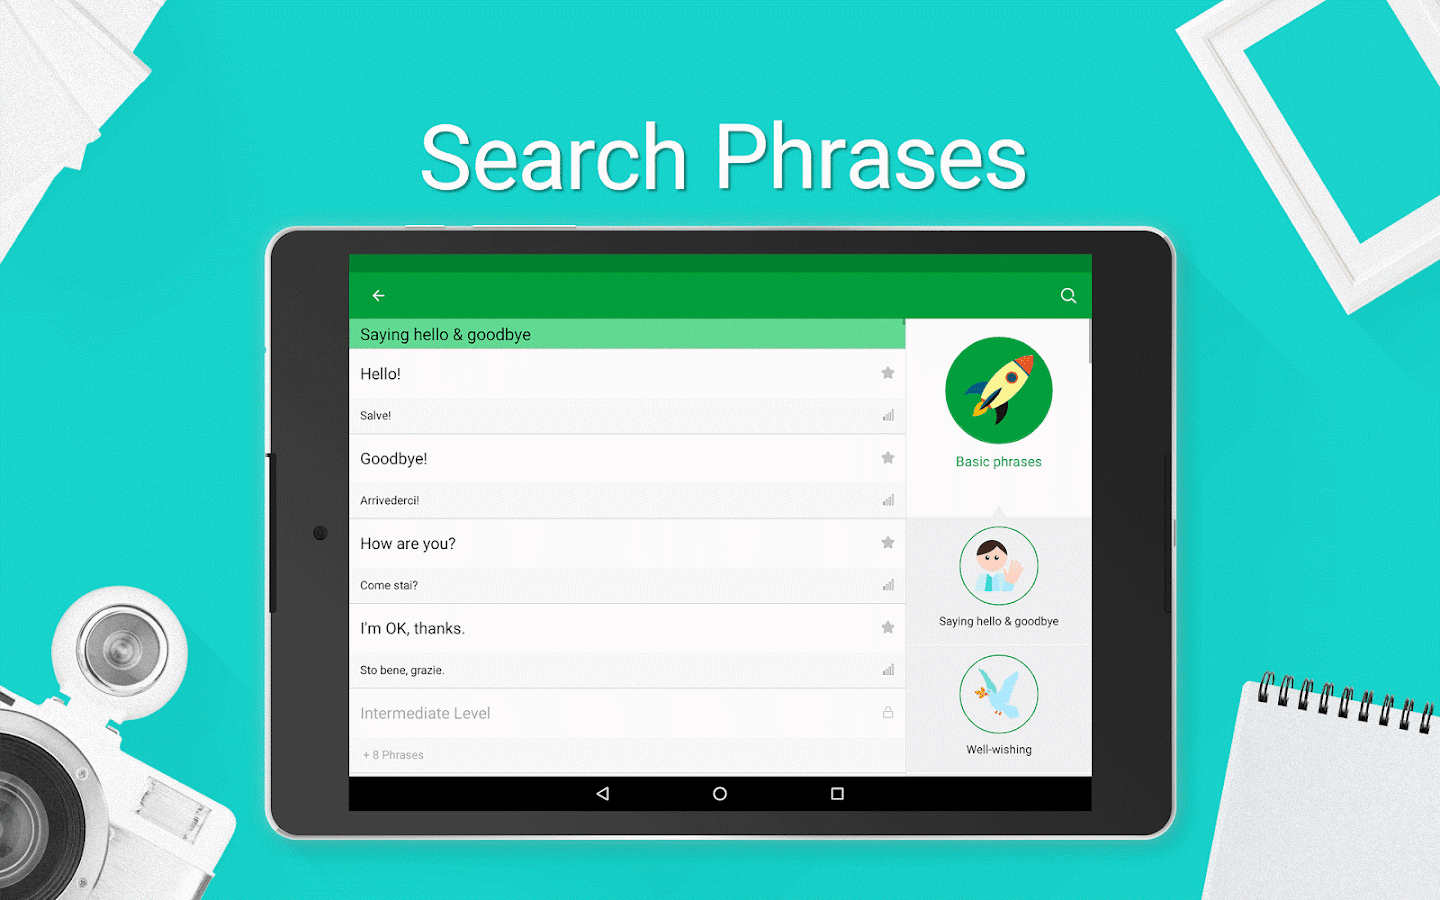 Learn italian phrasebook 5000 phrases android apps on google play learn italian phrasebook 5000 phrases screenshot kristyandbryce Choice Image